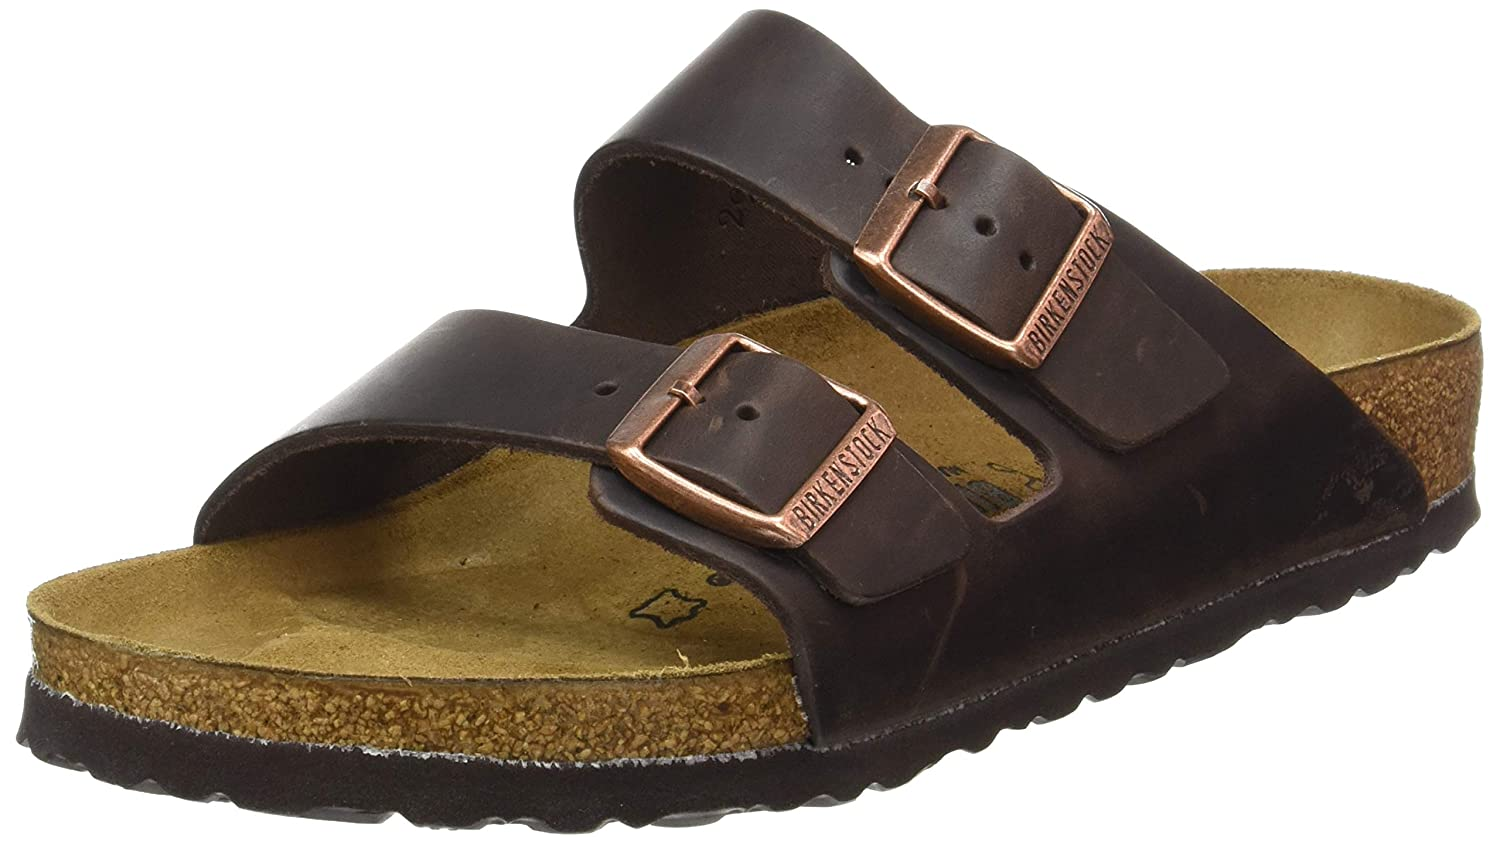 adultoMainAppsAmazon unisex Birkenstock it Arizona Sandali O8n0wvymN